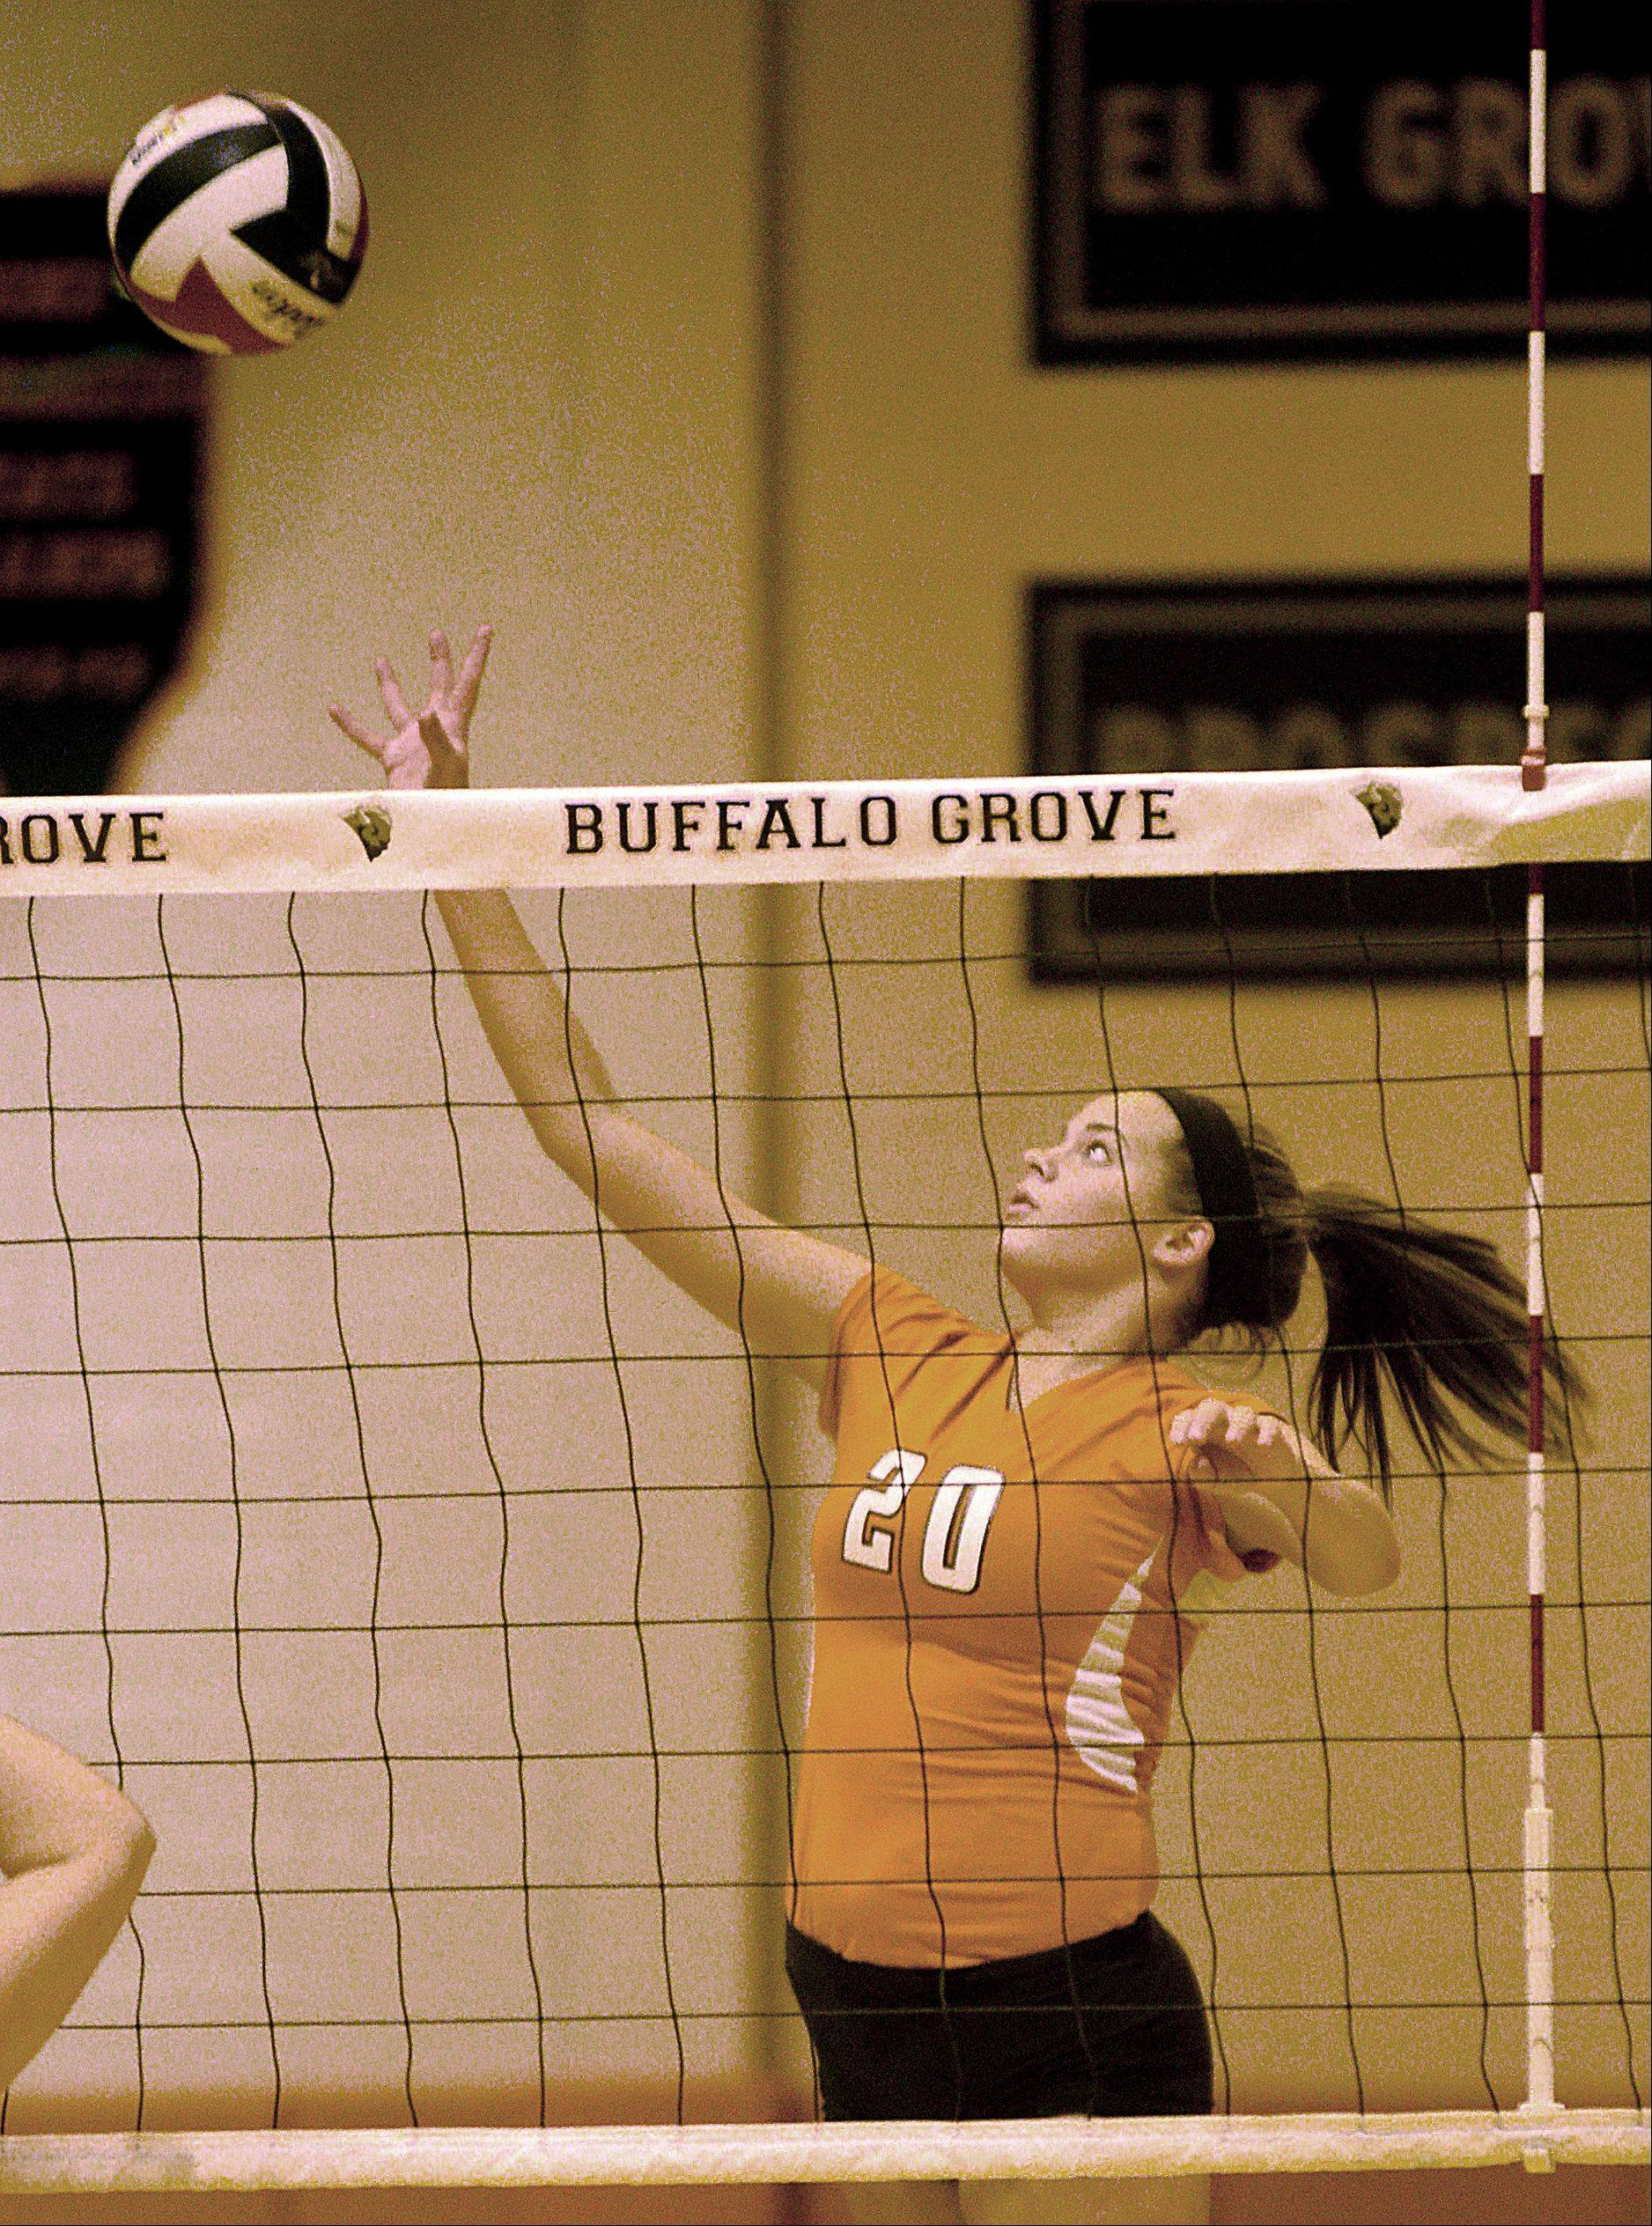 Buffalo Grove's Alaina Murphy tips the ball during a varsity volleyball game against Deerfield at Buffalo Grove on Monday night.